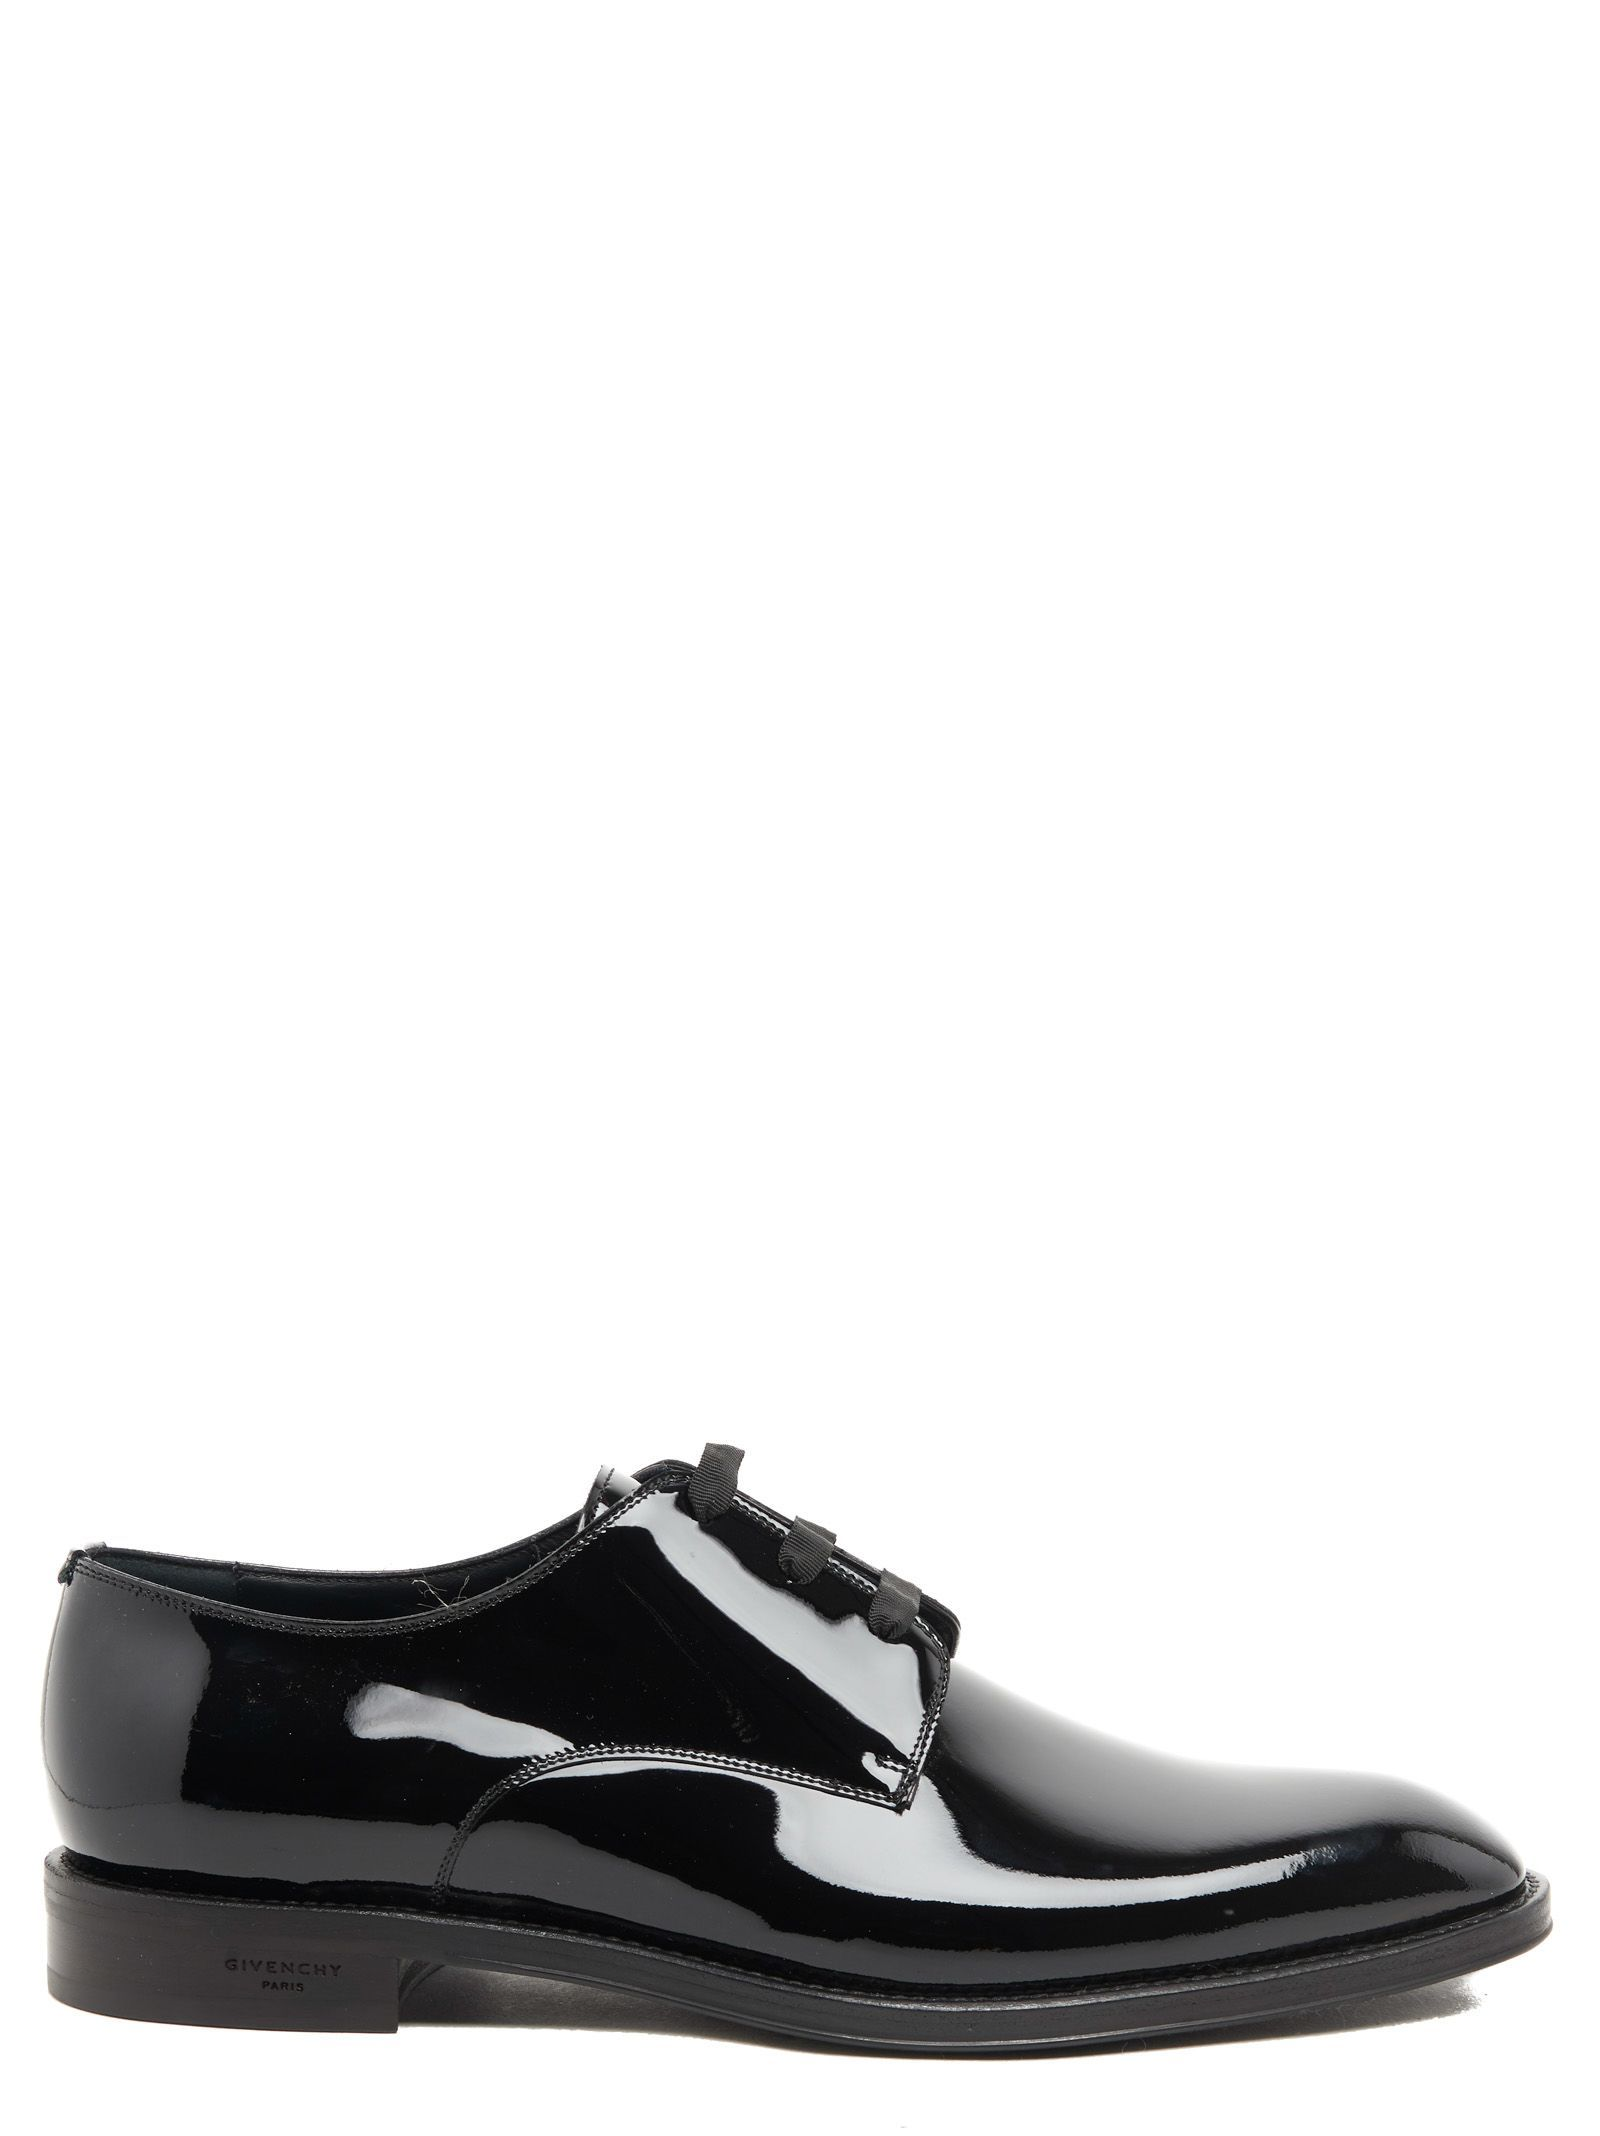 cda9cd670a4c GIVENCHY LACED UP.  givenchy  shoes